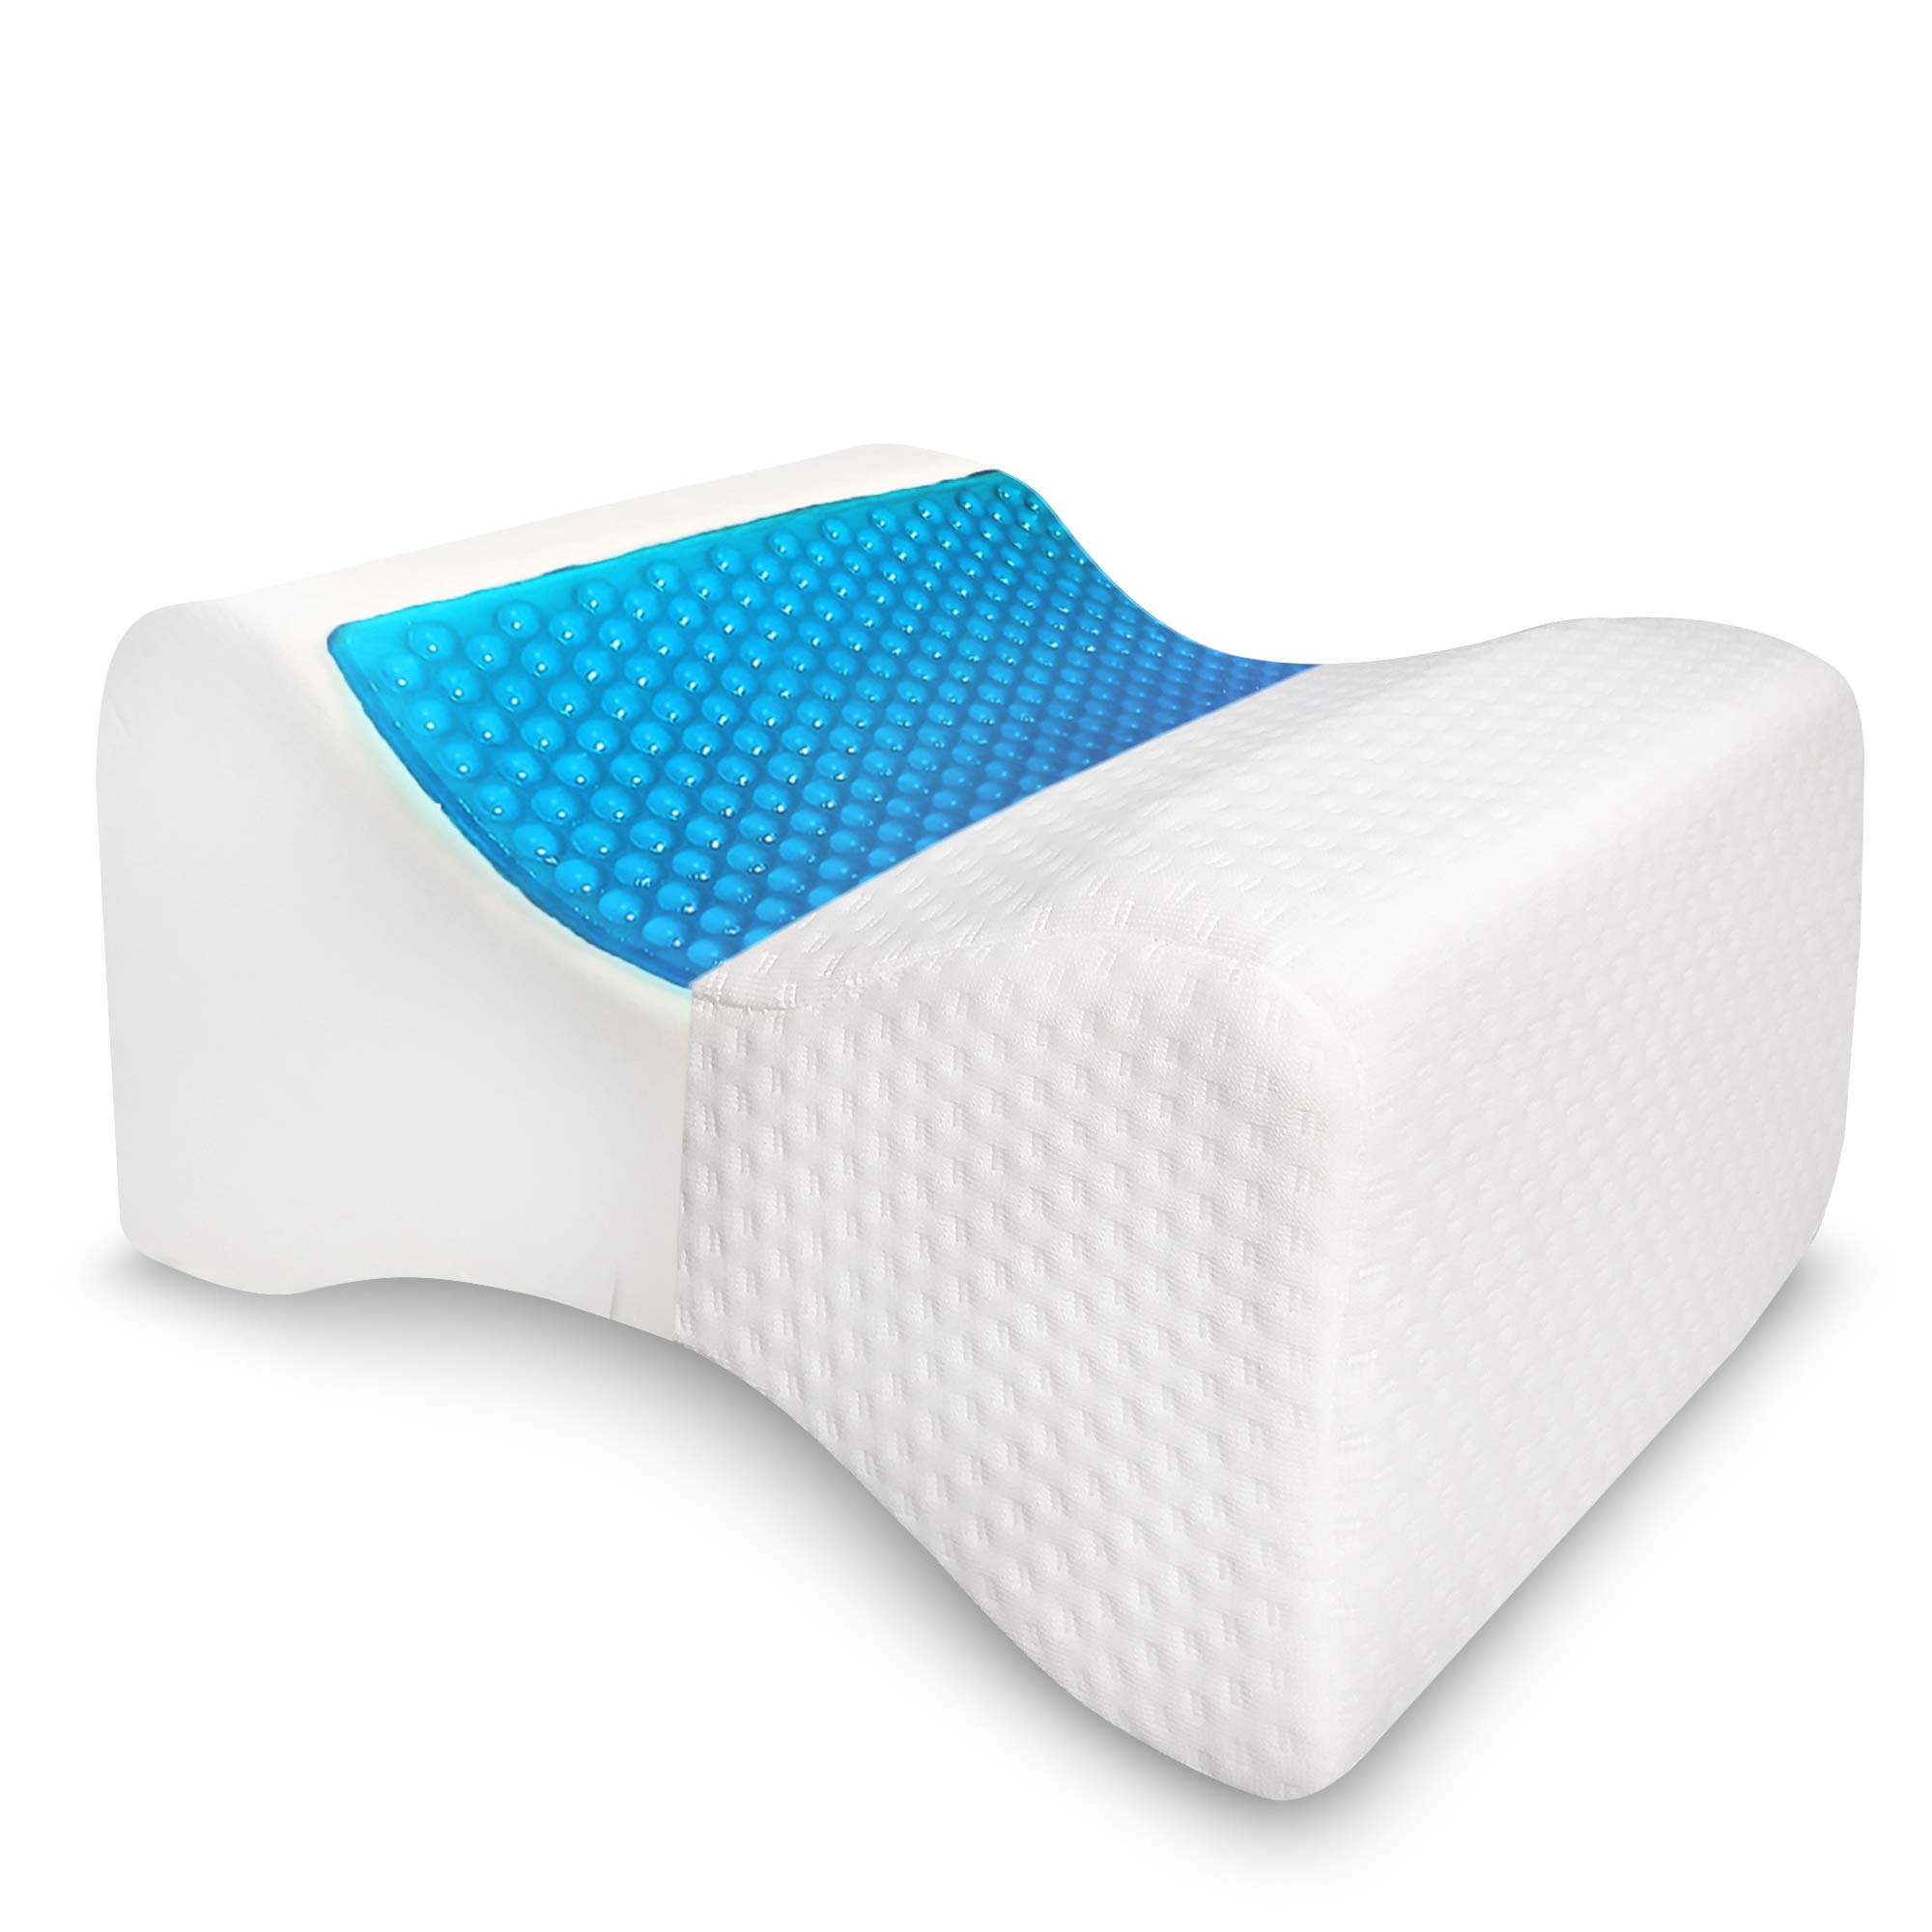 Knee Pillow for Side Sleepers - Contour Legacy Leg Wedge for Sleeping - Sciatica, Hip, Joint and Lower Back Pain Relief - Orthopedic Cooling Gel Memory Foam for Under Knees & Between Legs Support